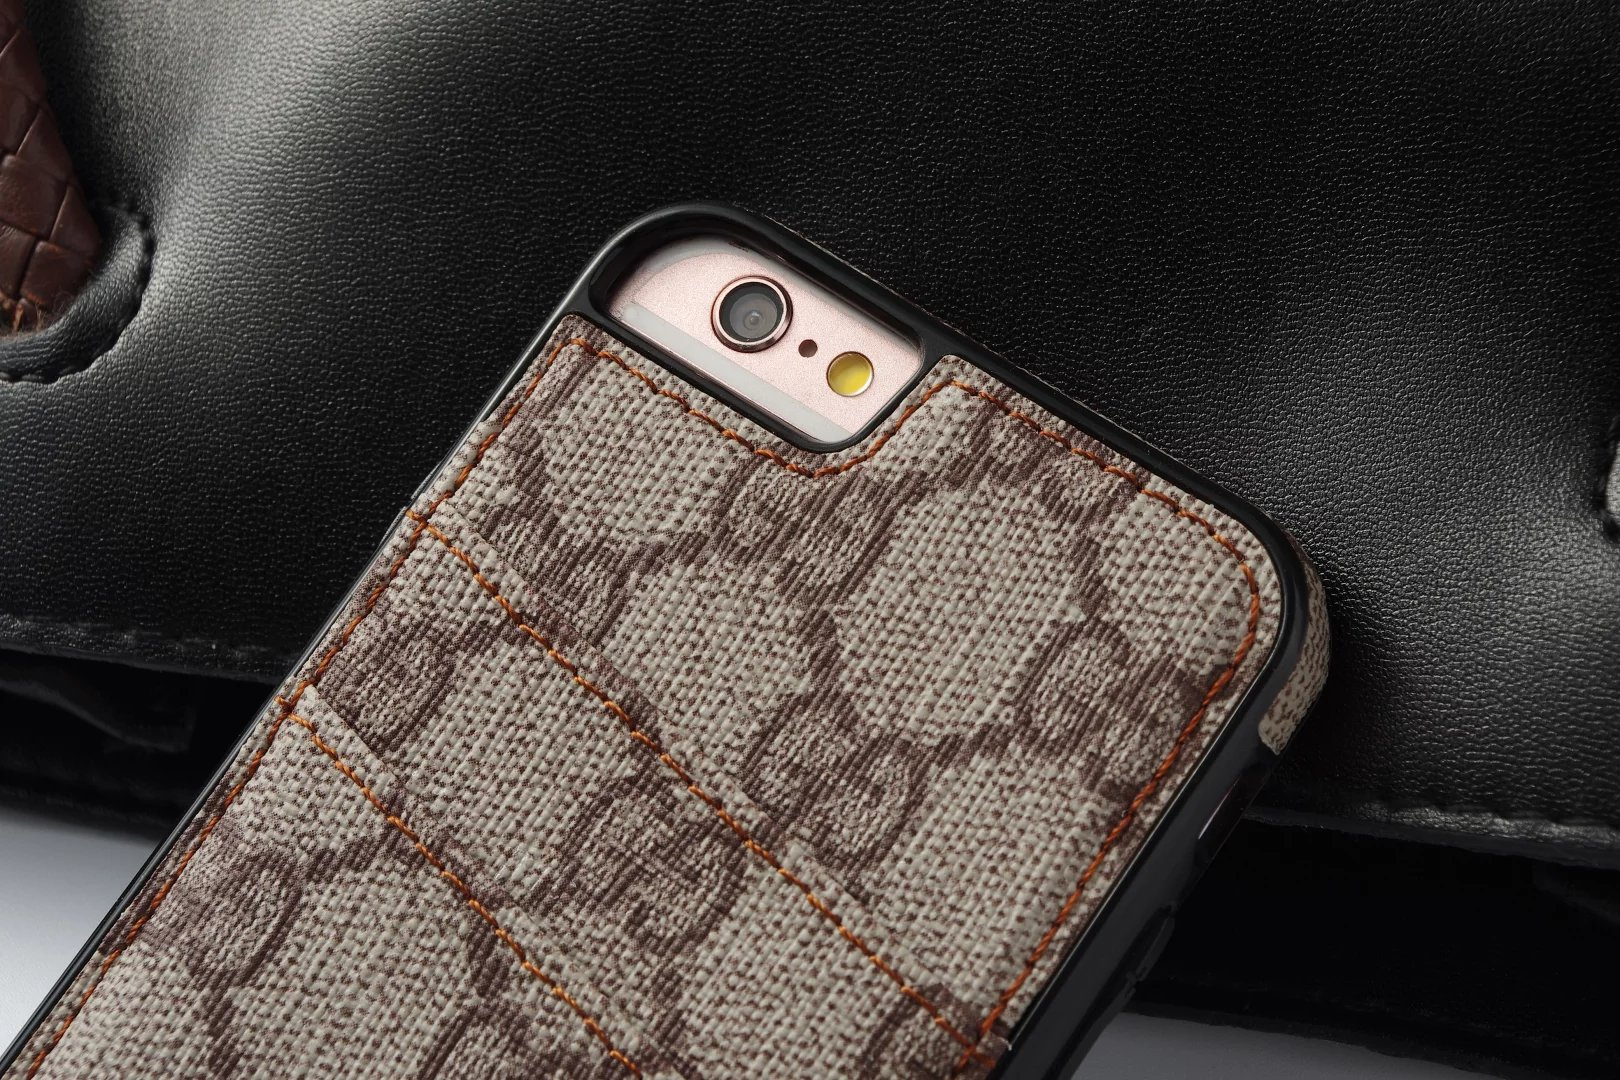 iphone 7 personalized cases where to buy iphone 7 cases fashion iphone7 case best cases for iphone 7 iphone 7 sticker case iphone flip case cell phone case websites cell phone protector cases photo case iphone 7